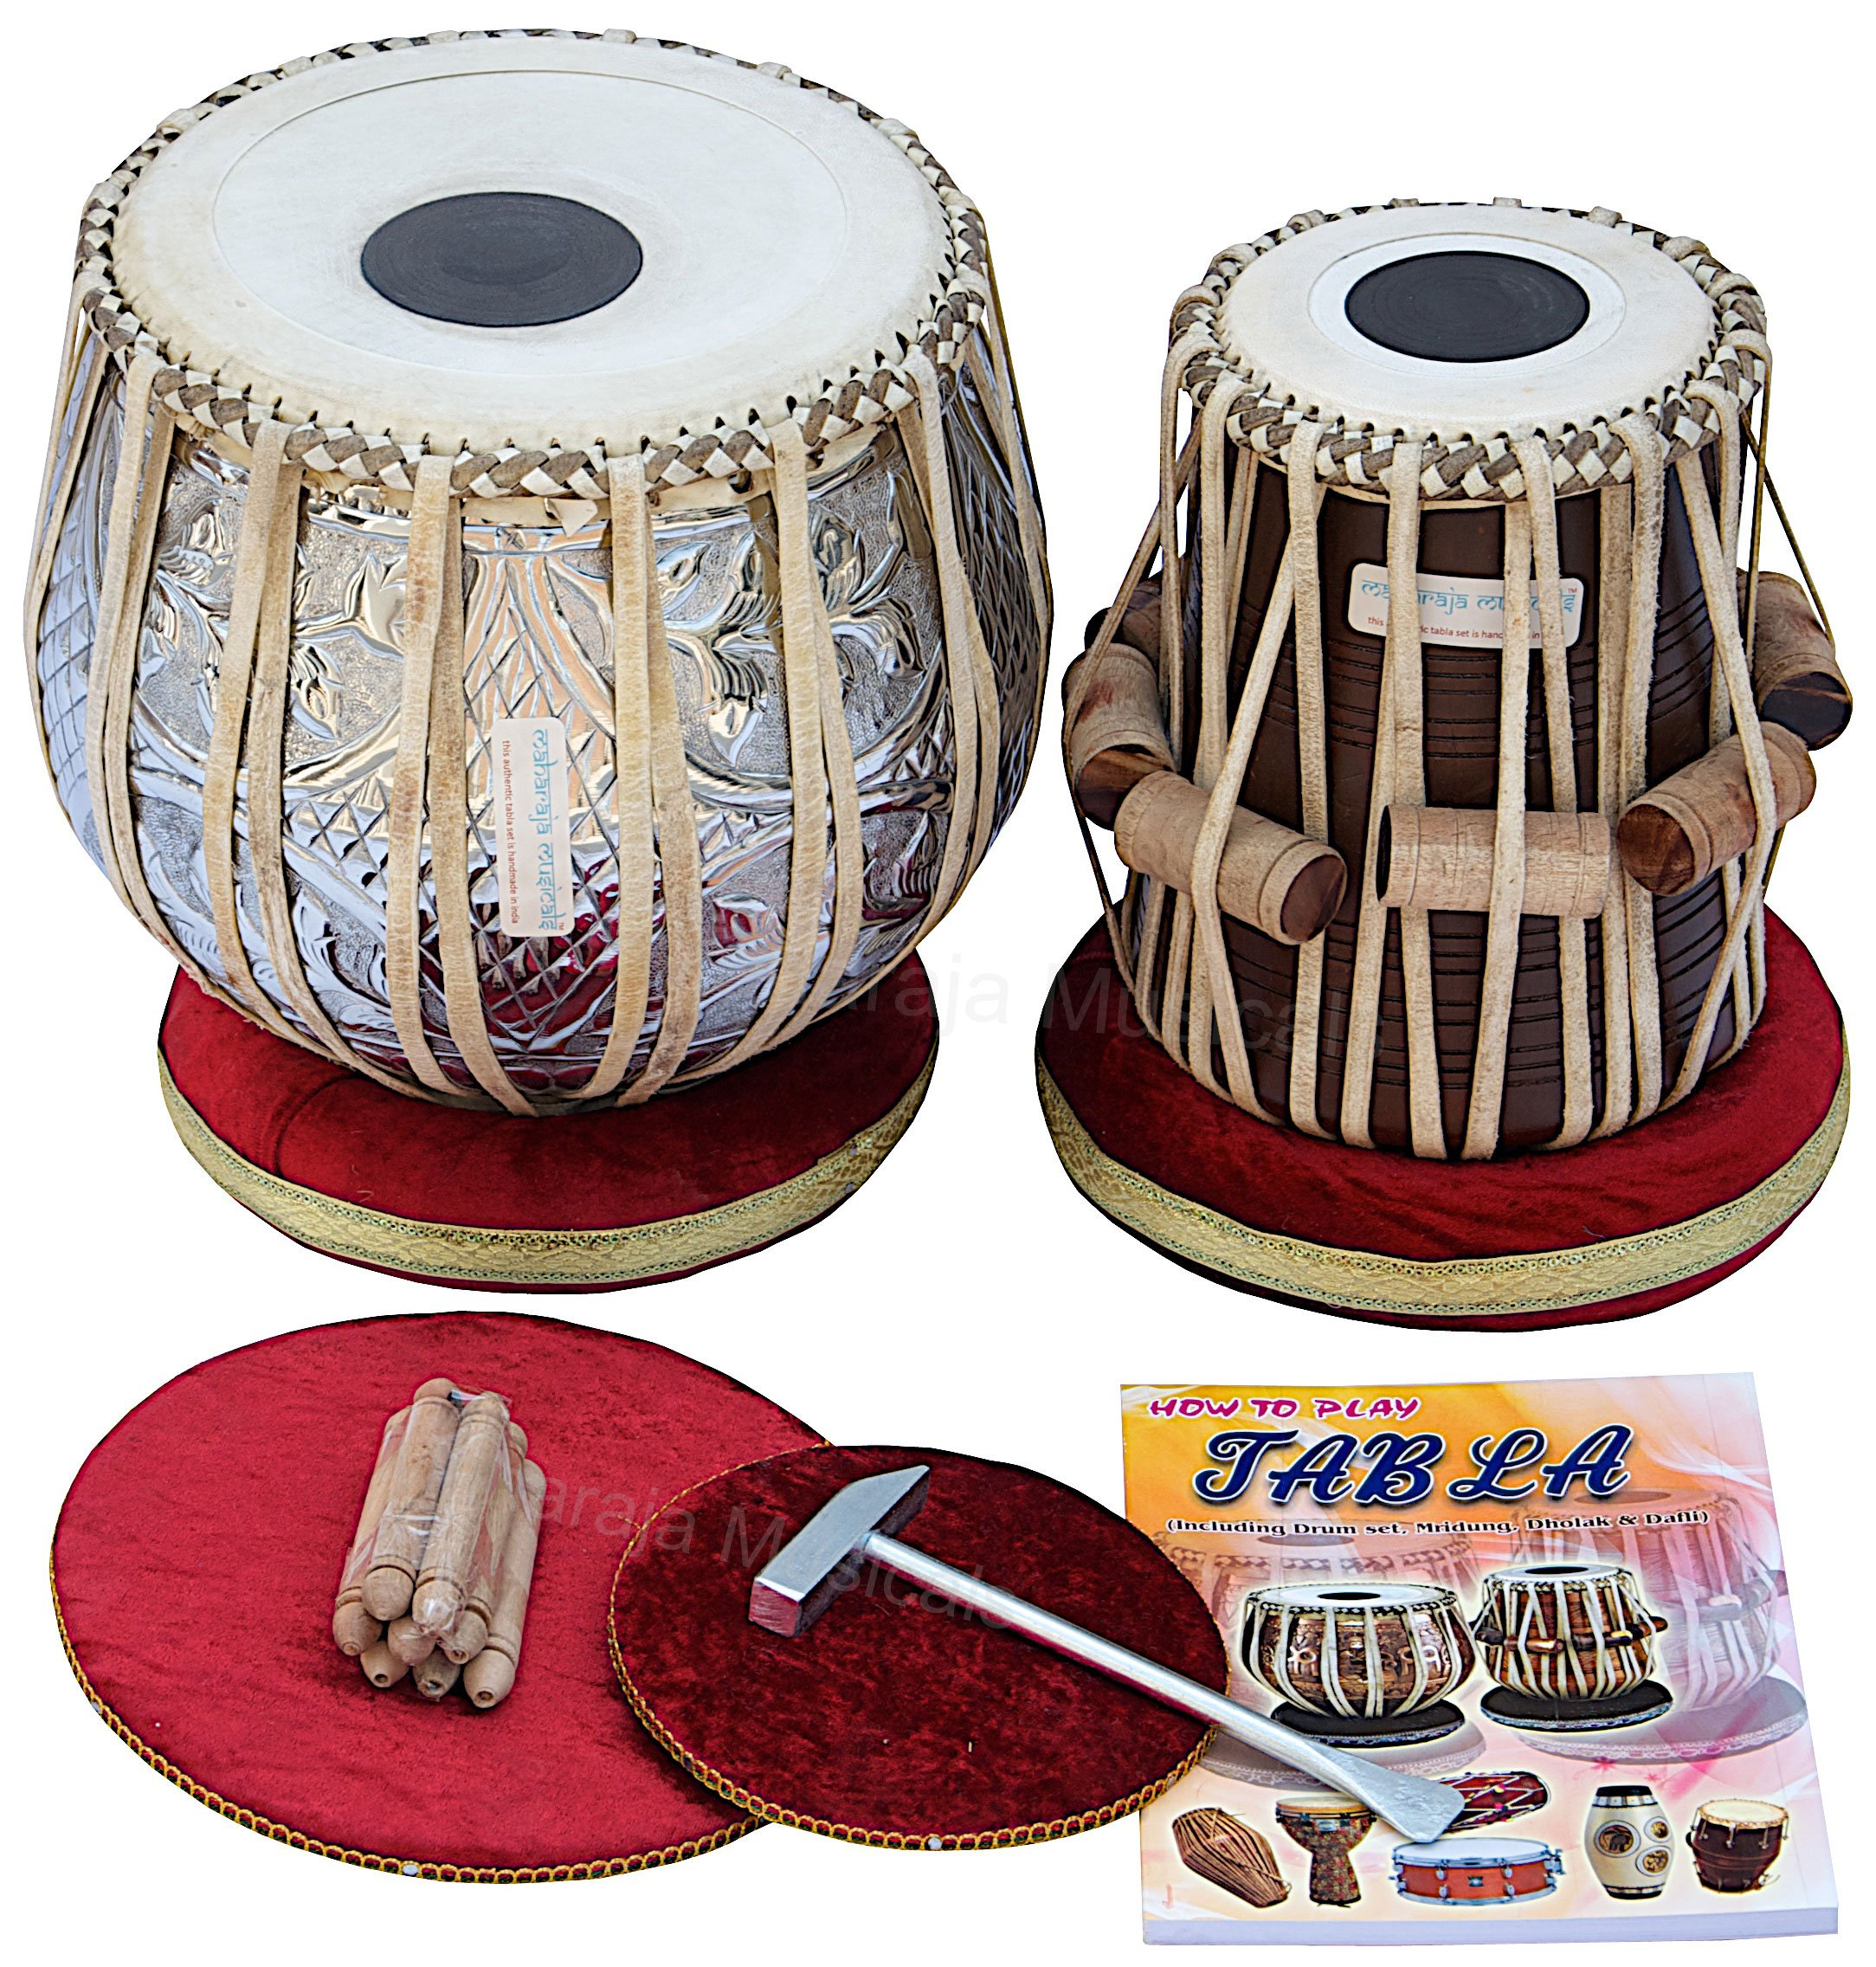 MAHARAJA Concert Tabla Drum Set, 4½ Kg Copper Bayan, Designer, Finest Dayan with Padded Bag, Book, Hammer, Cushions & Cover - Tabla Set Tabla Drums Tablas Indian Musical Instruments (PDI-69)